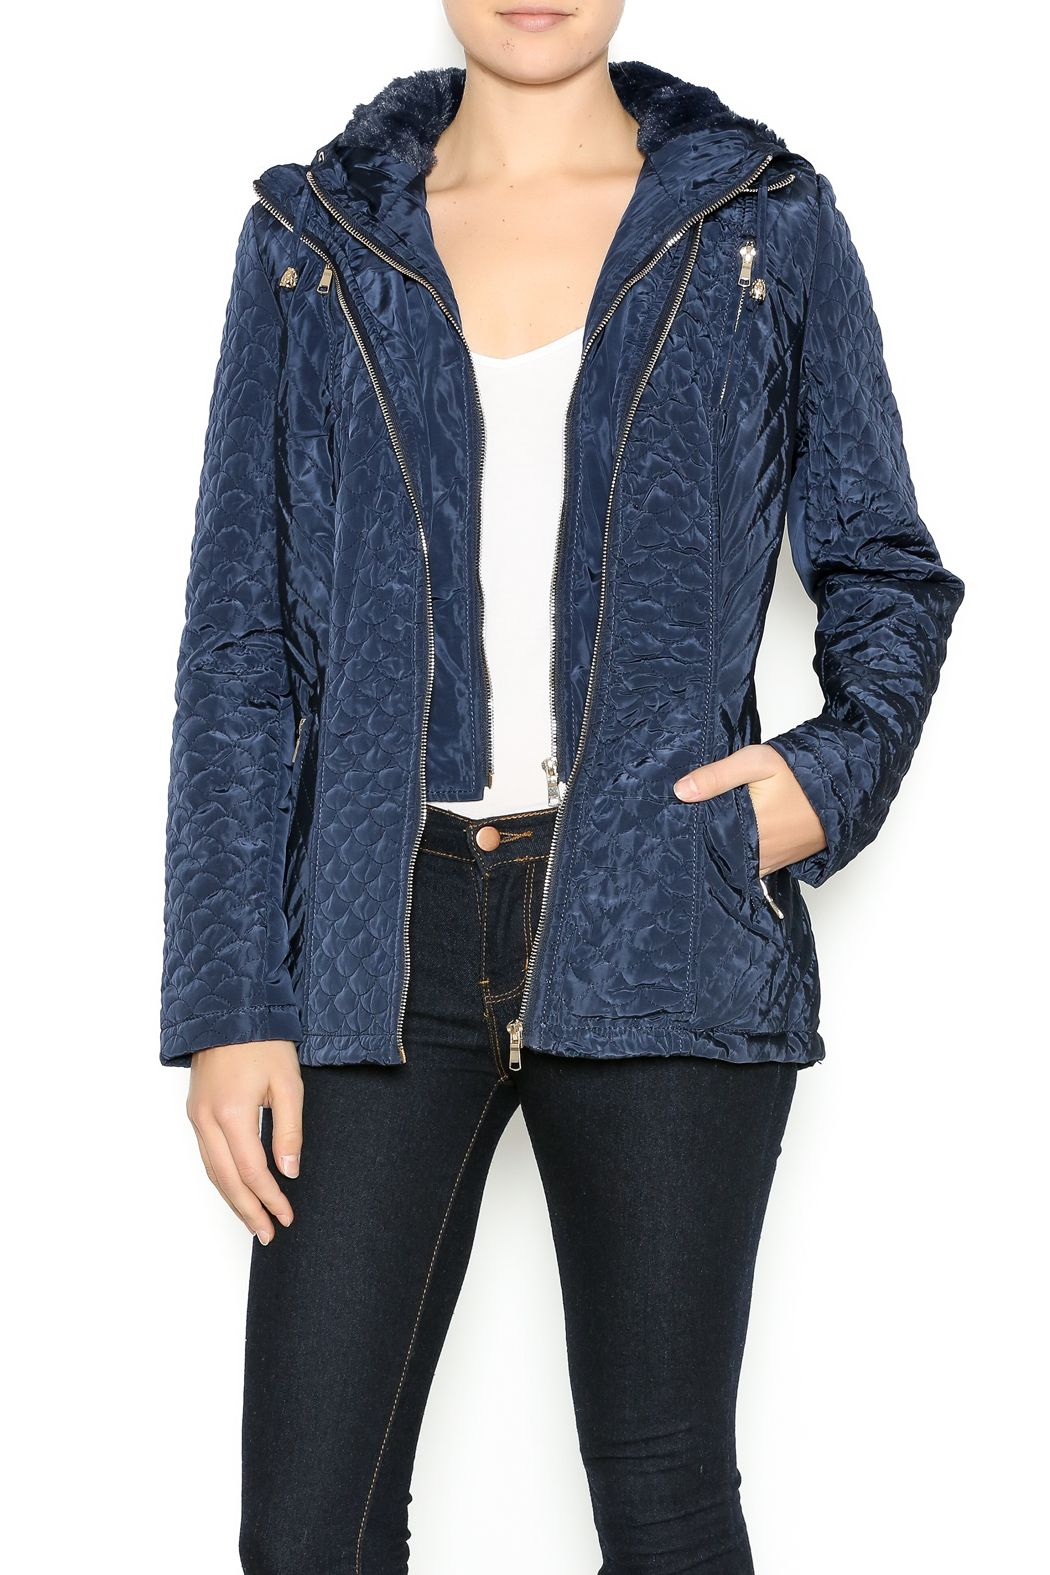 Coalition la quilted all weather jacket all weather